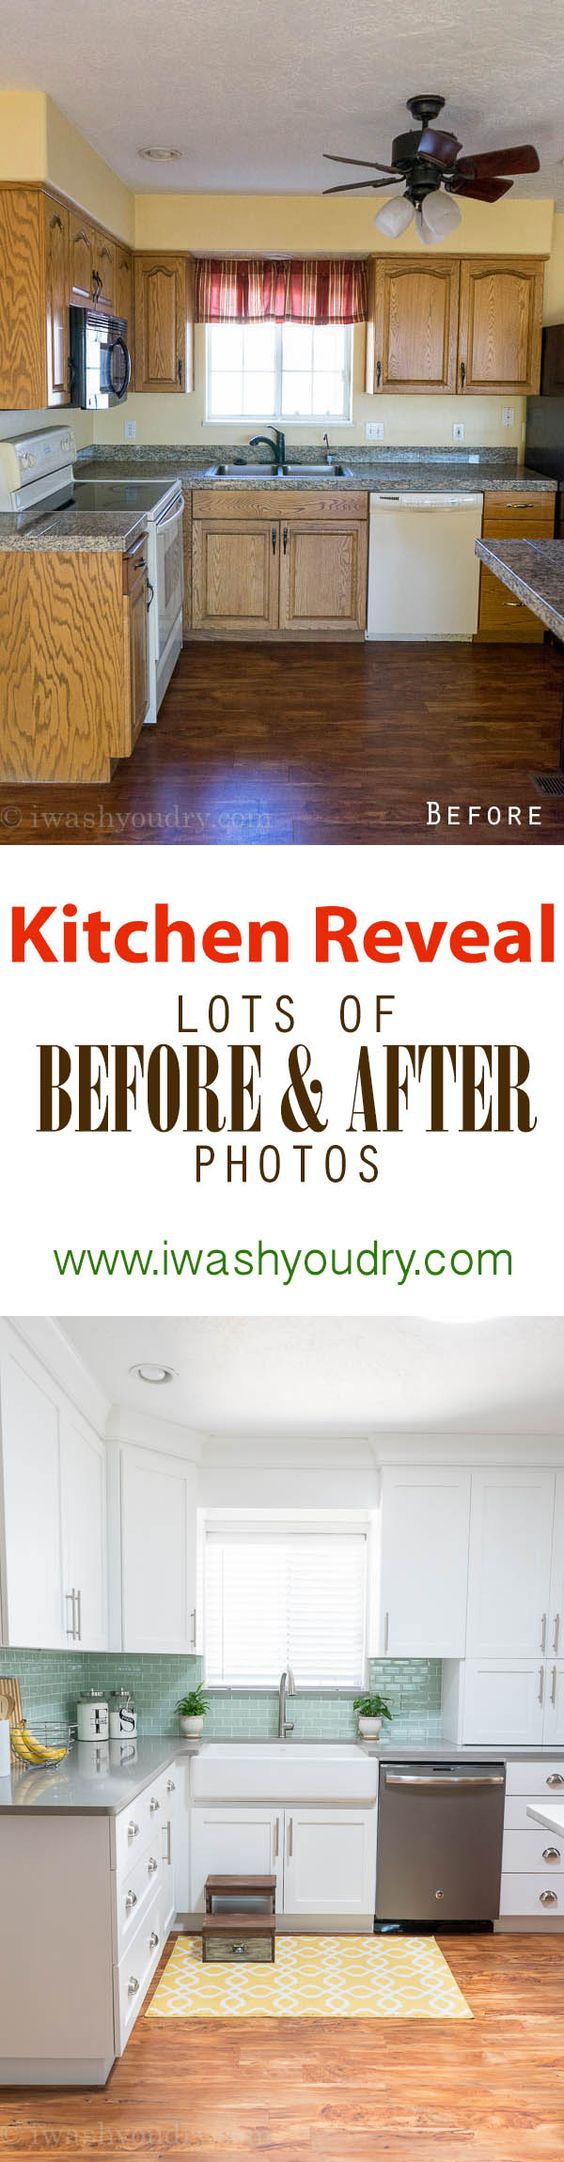 Kitchen Reveal {Before and After Photos}: